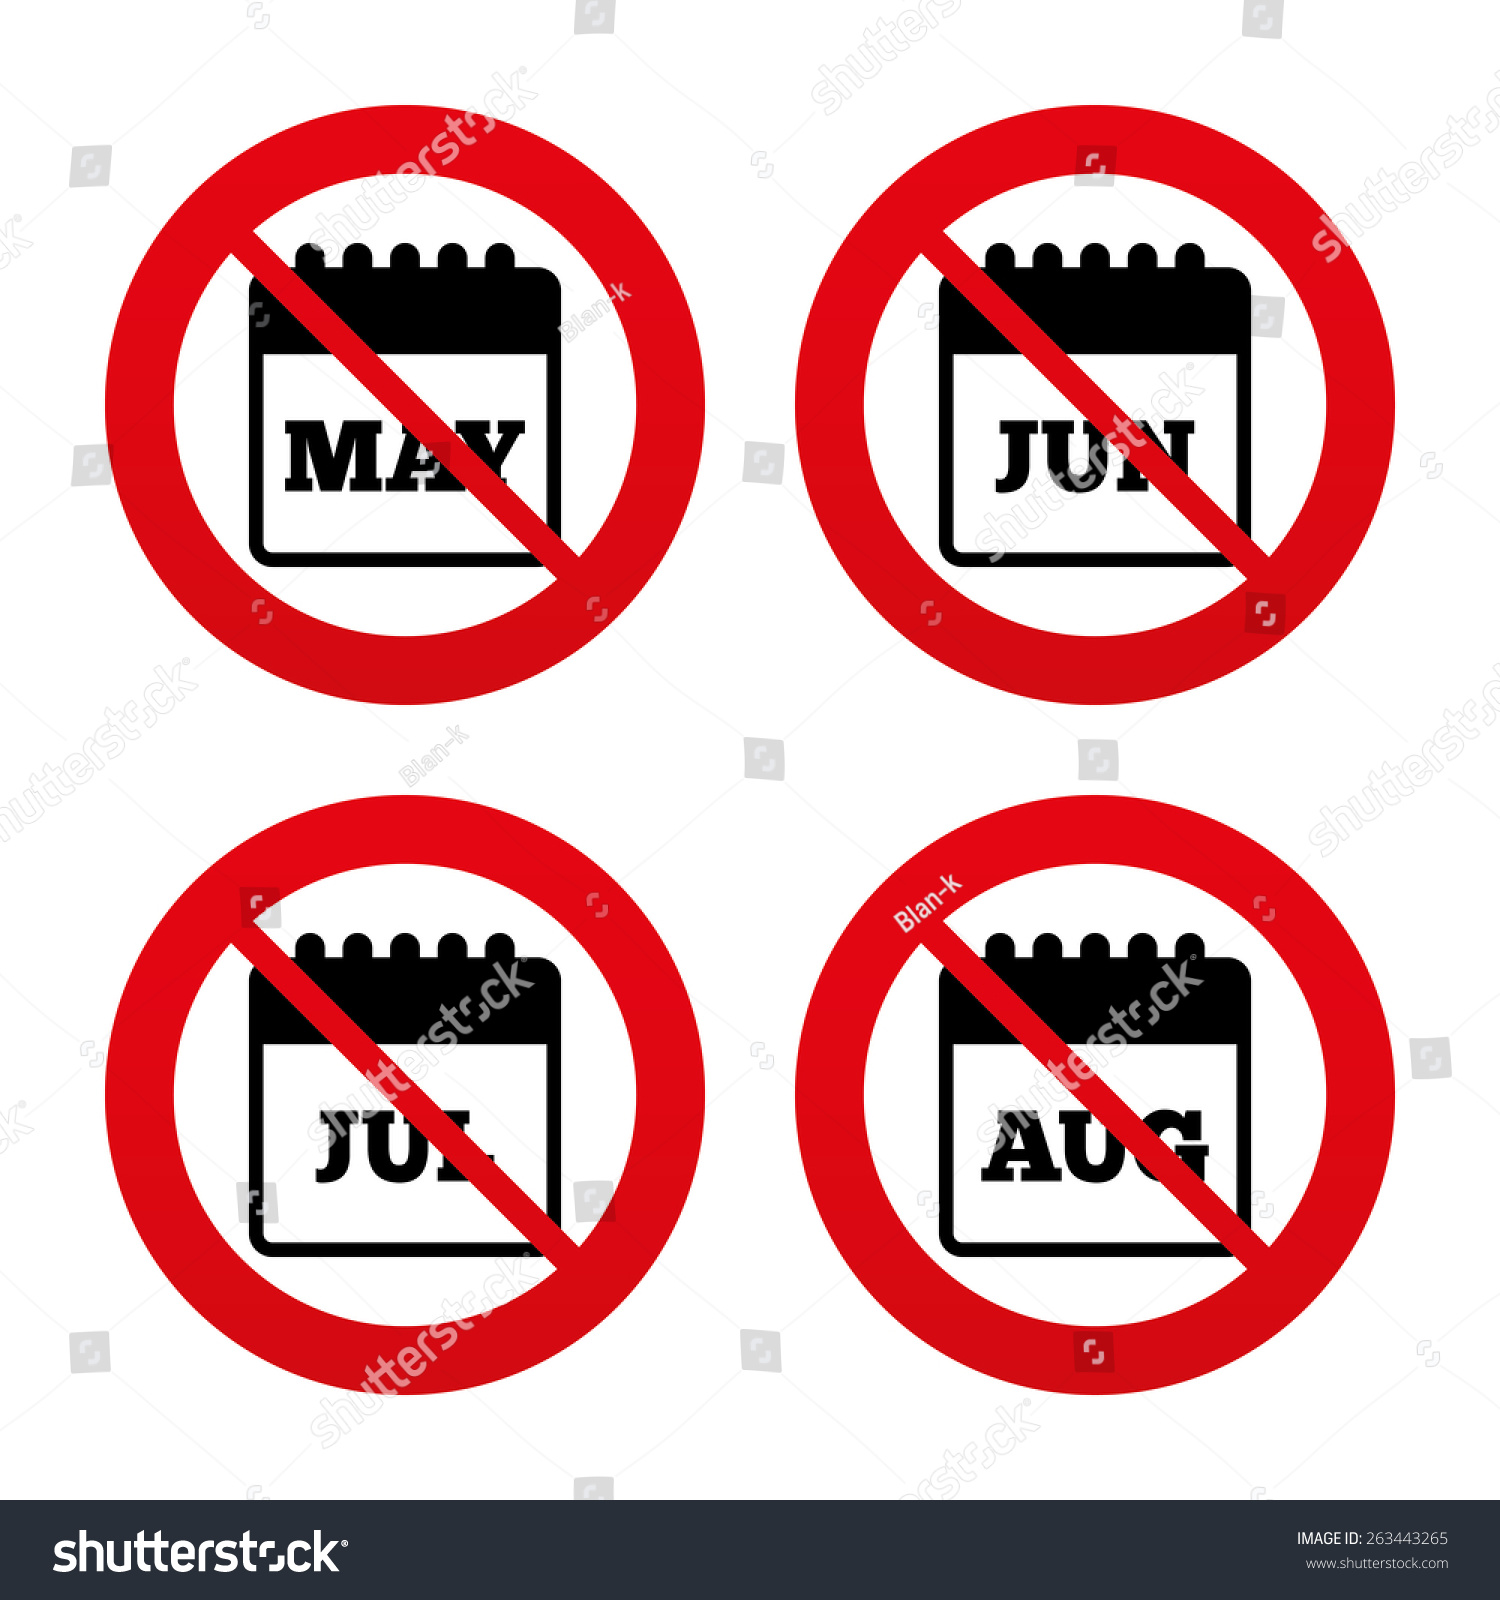 No ban stop signs calendar icons stock vector 263443265 shutterstock no ban or stop signs calendar icons may june july and buycottarizona Image collections